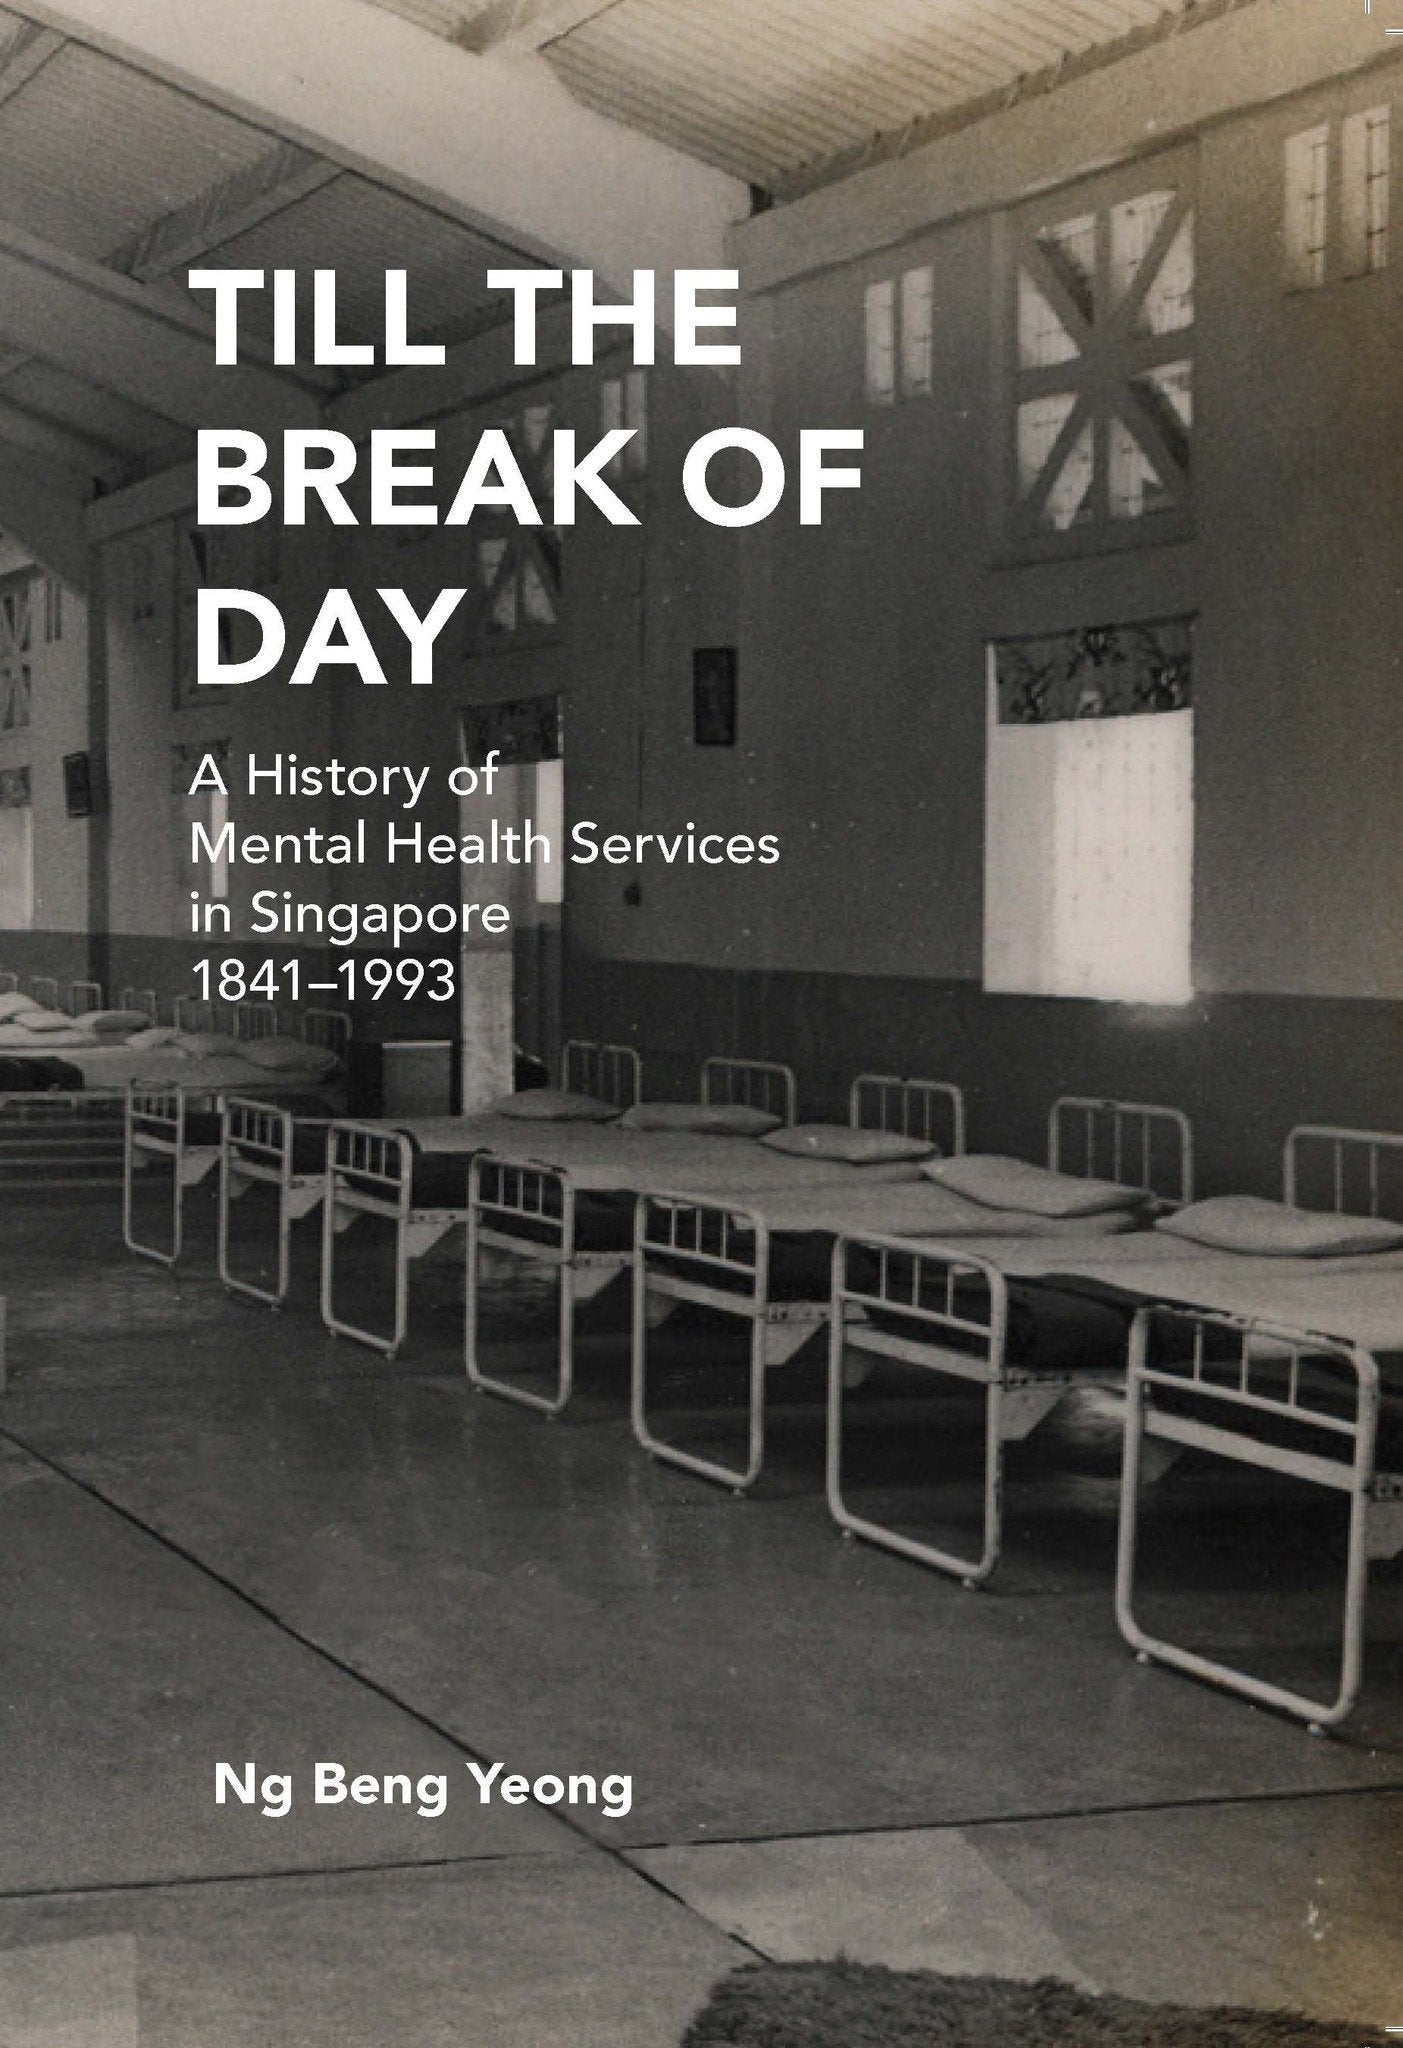 Till the Break of Day: A History of Mental Health Services in Singapore, 1841-1993